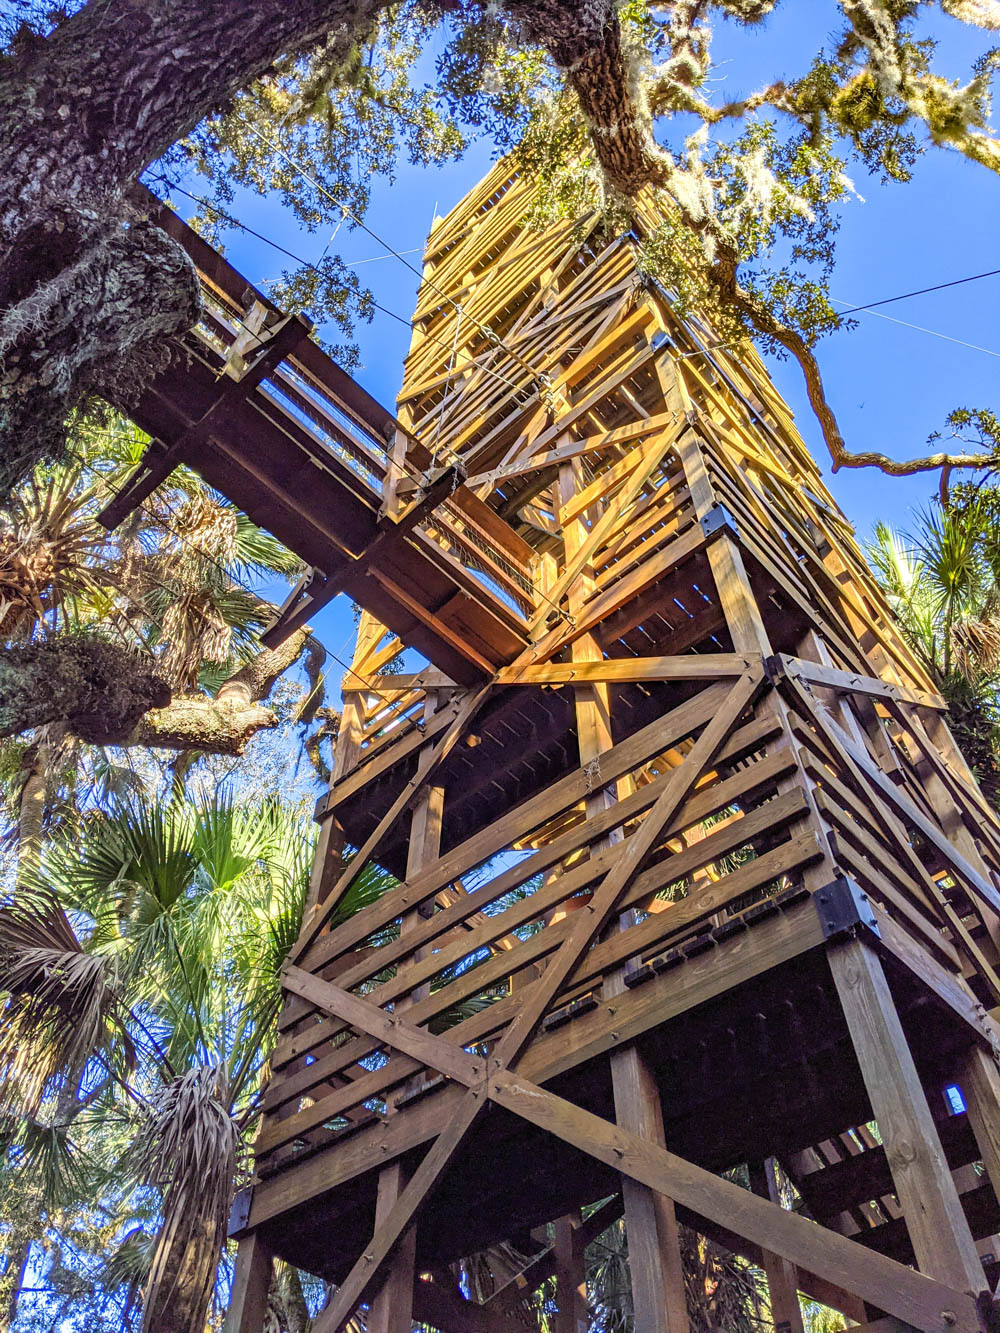 Myakka Canopy Walkway and Observation Tower / 3 days in Sarasota, Florida / What to do in Sarasota, Where to eat in Sarasota, itinerary and information guide